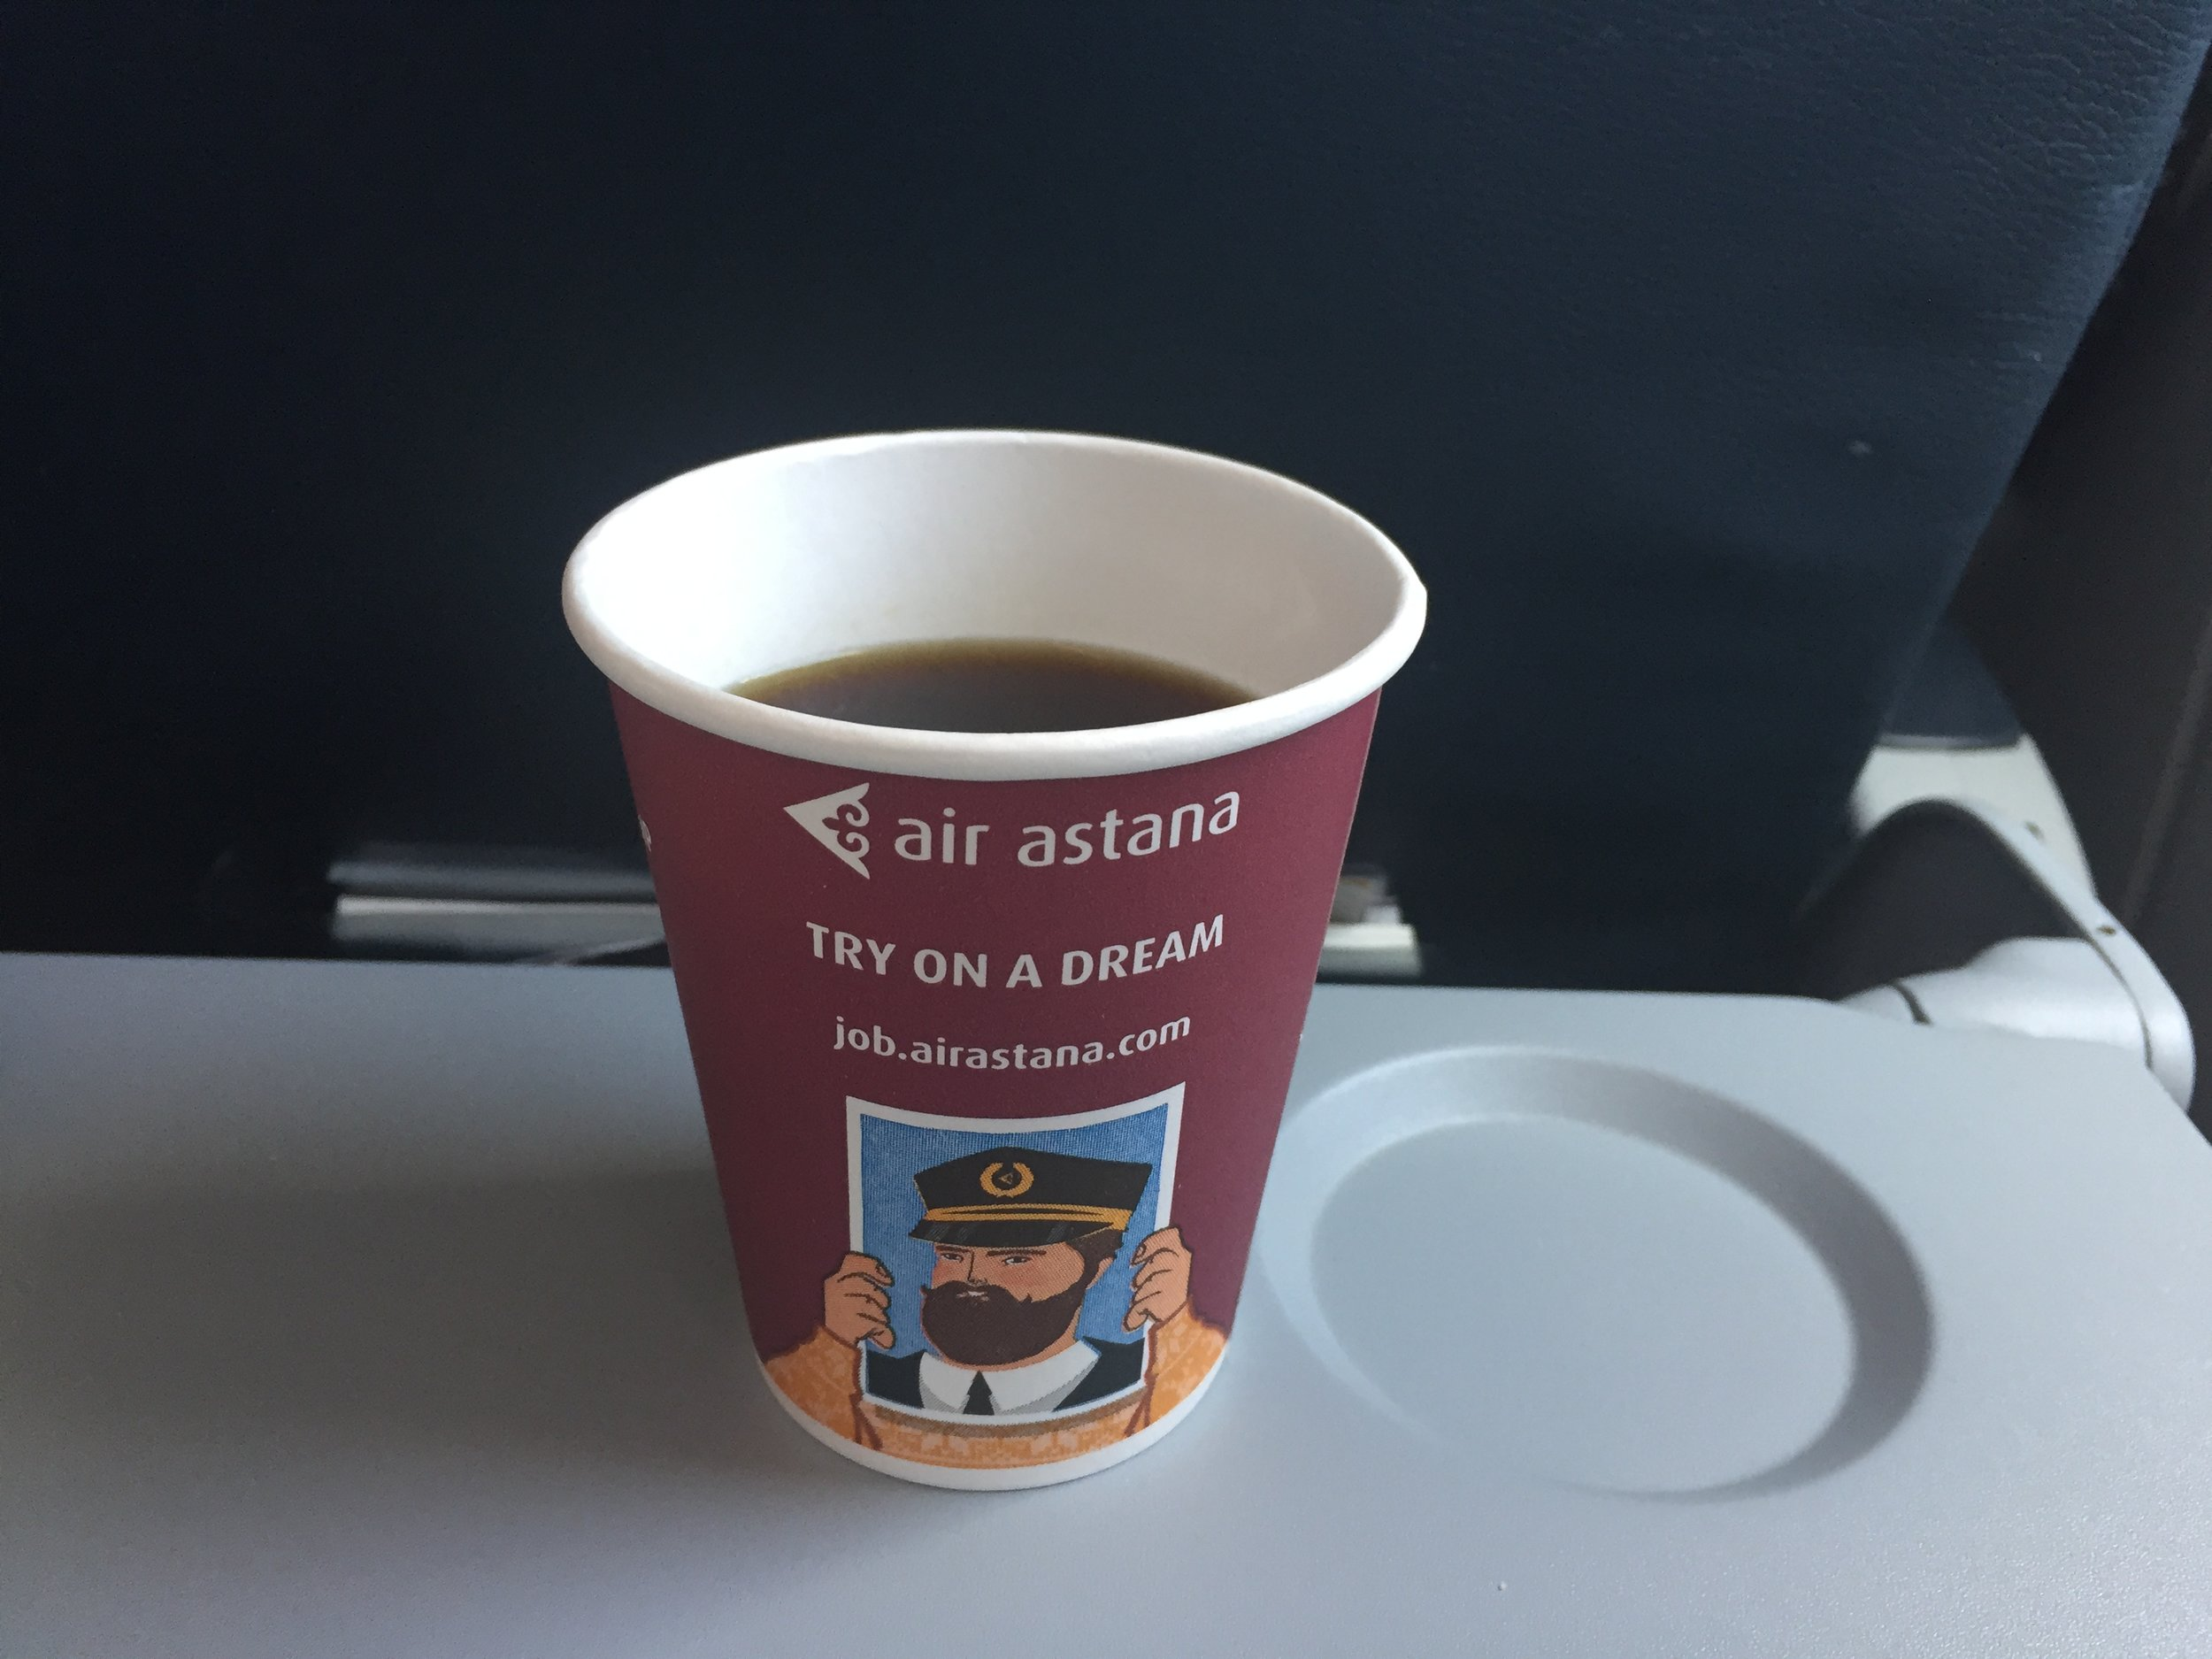 air astana coffee cup.JPG